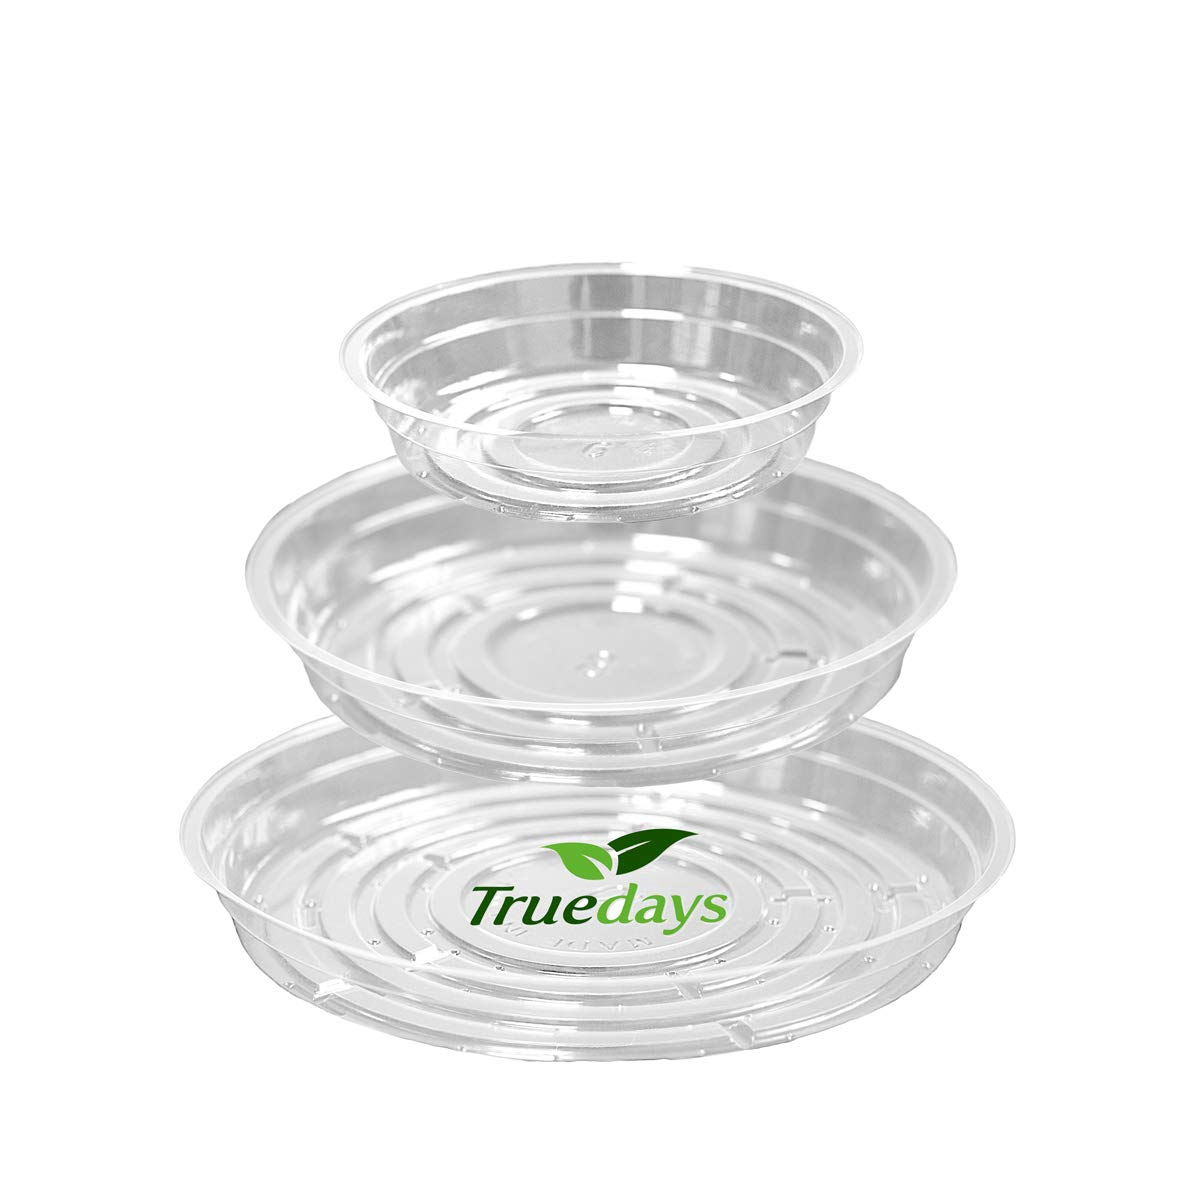 TRUEDAYS 15 Pack(6 inch/8inch/10inch) Clear Plant Saucers Flower Pot Tray Excellent for Indoor & Outdoor Plants by TRUEDAYS